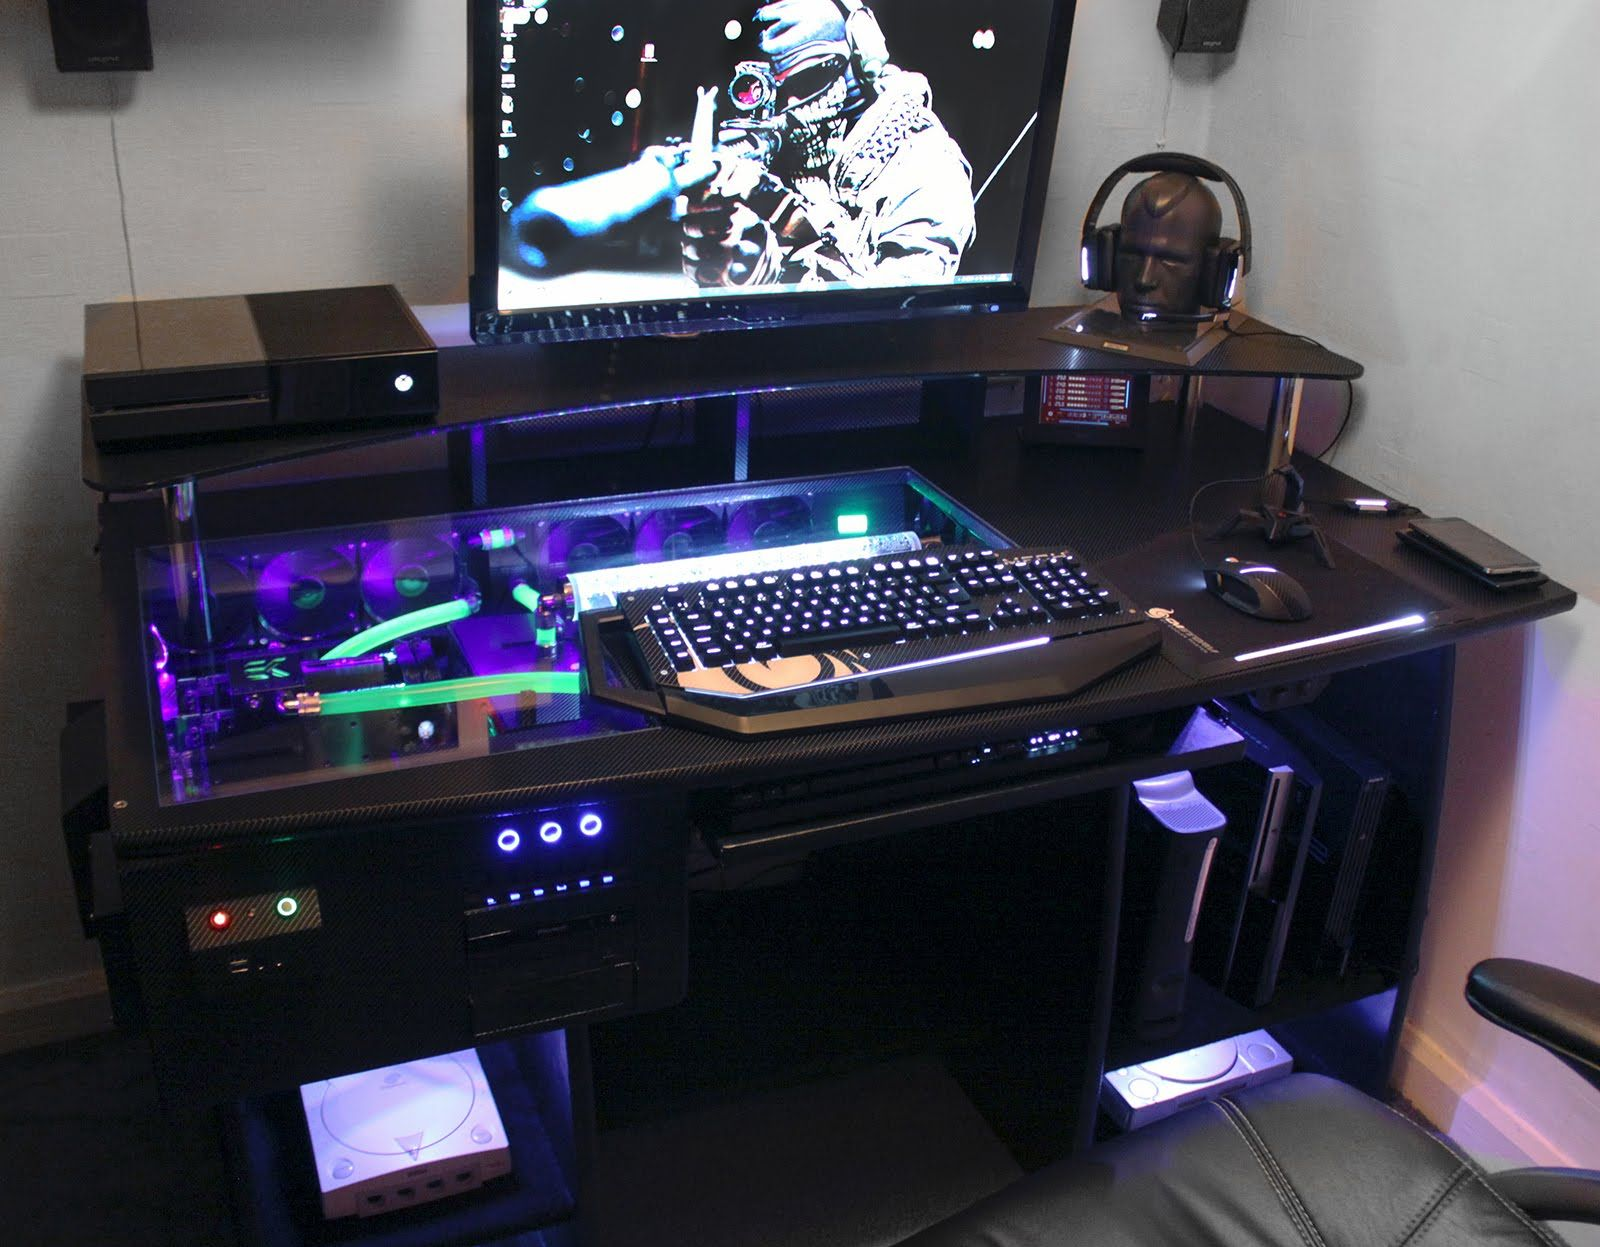 Best 10+ Computer desk for gaming ideas on Pinterest | Small ...